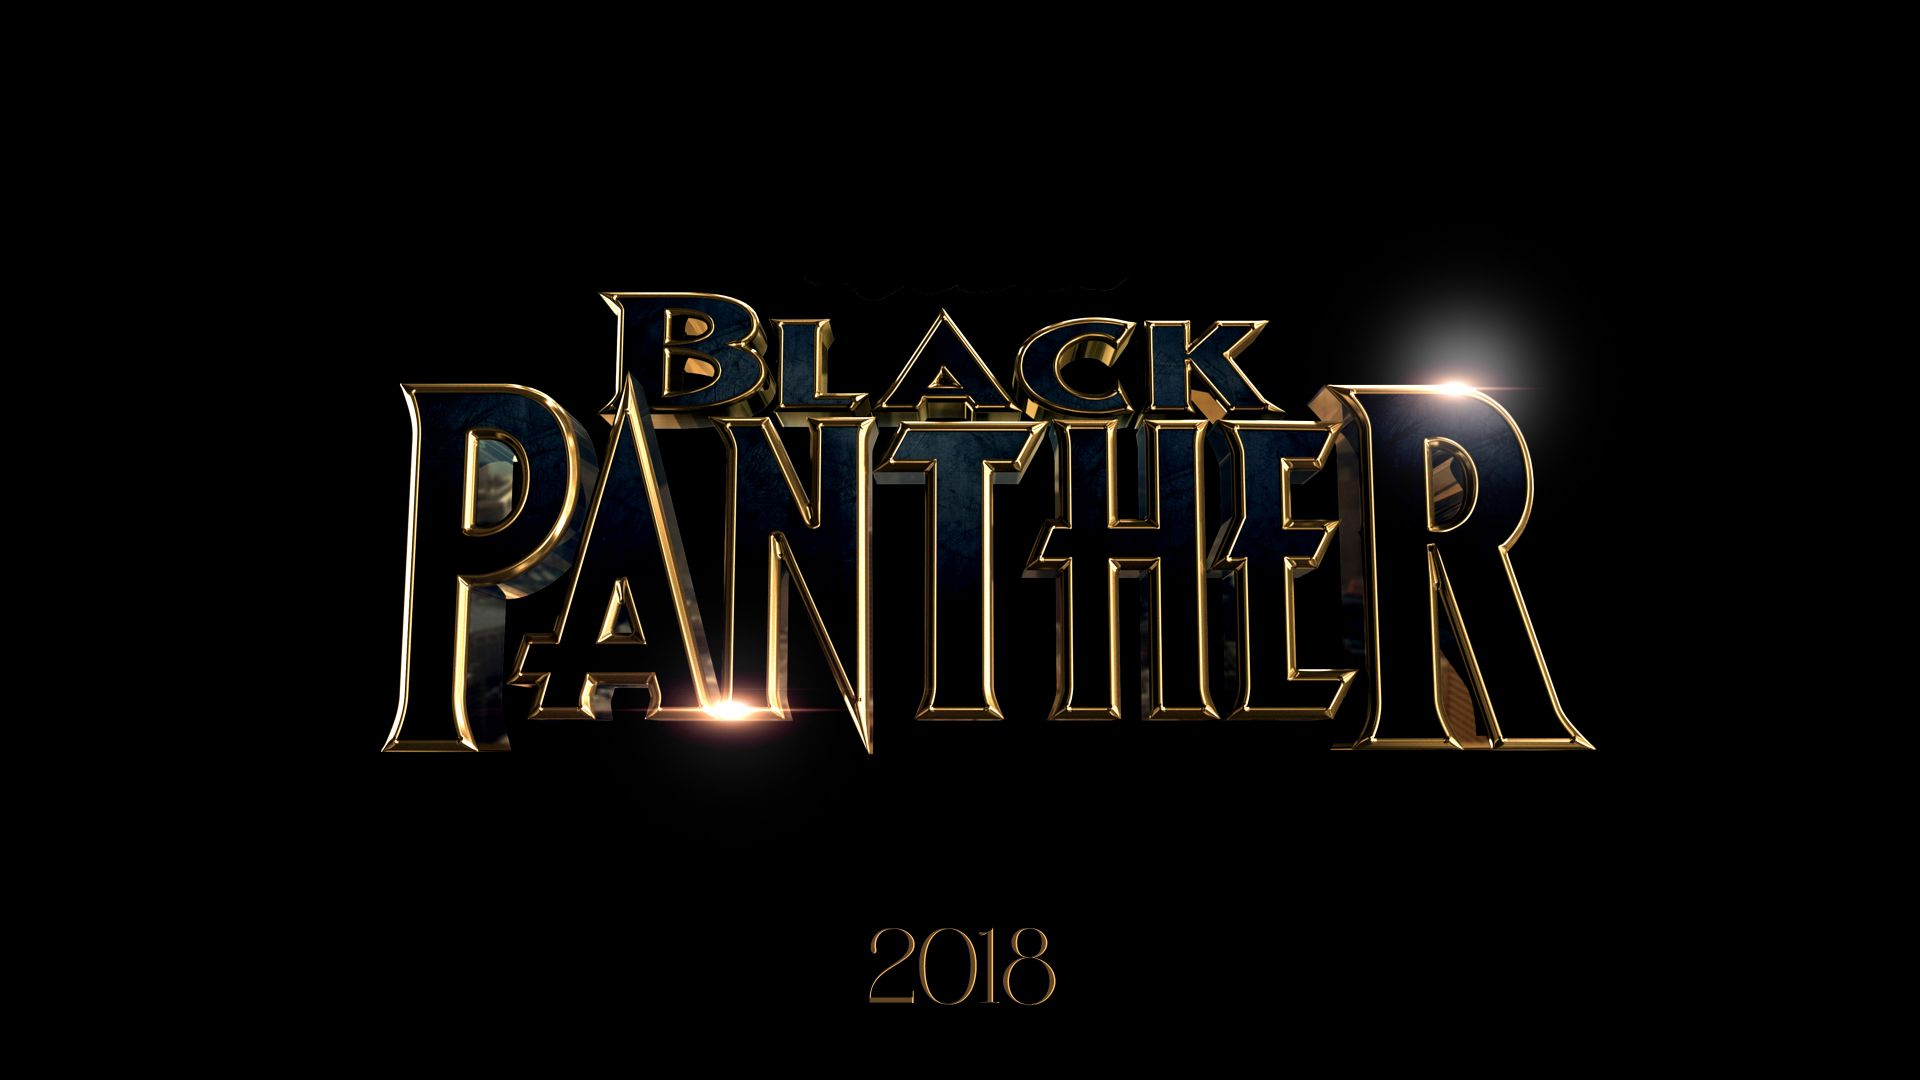 Черная пантера, Black Panther, 4k, 2018, poster (horizontal)